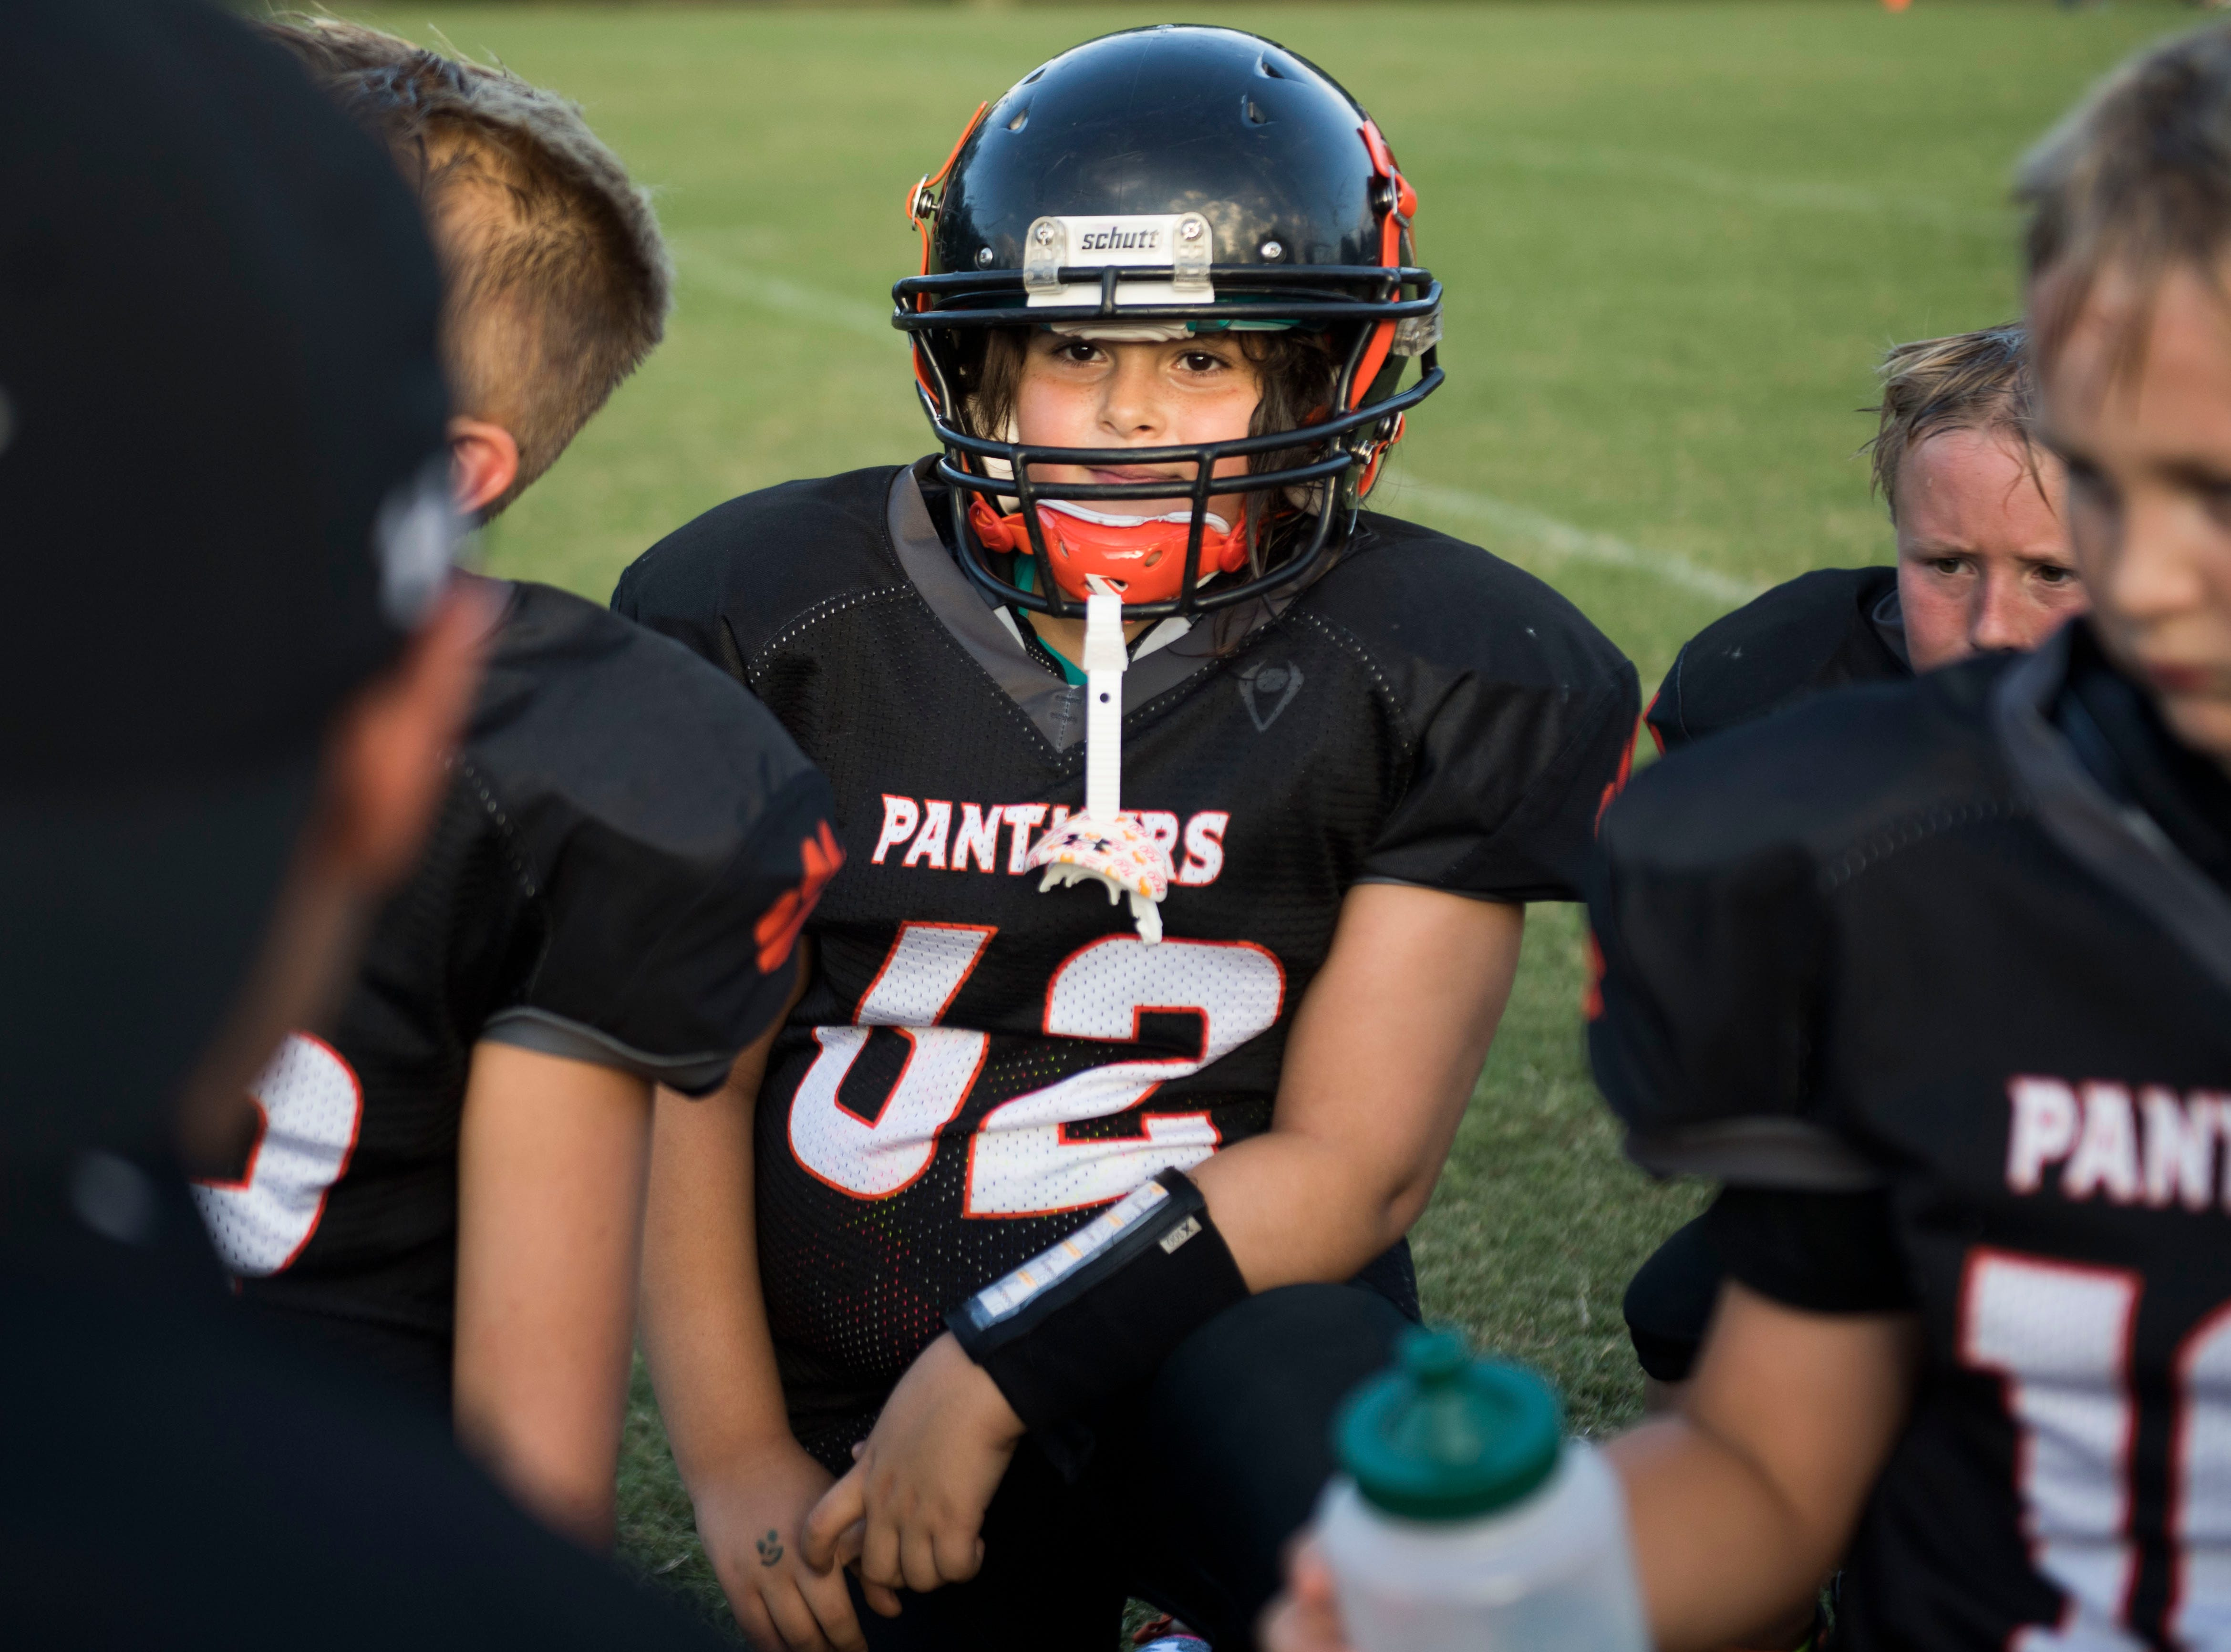 Ava Wooten, 9, of Powell, listens to her 9U Powell Youth football coach during a game Tuesday, Sept. 11, 2018. Ava is the only girl on her team.